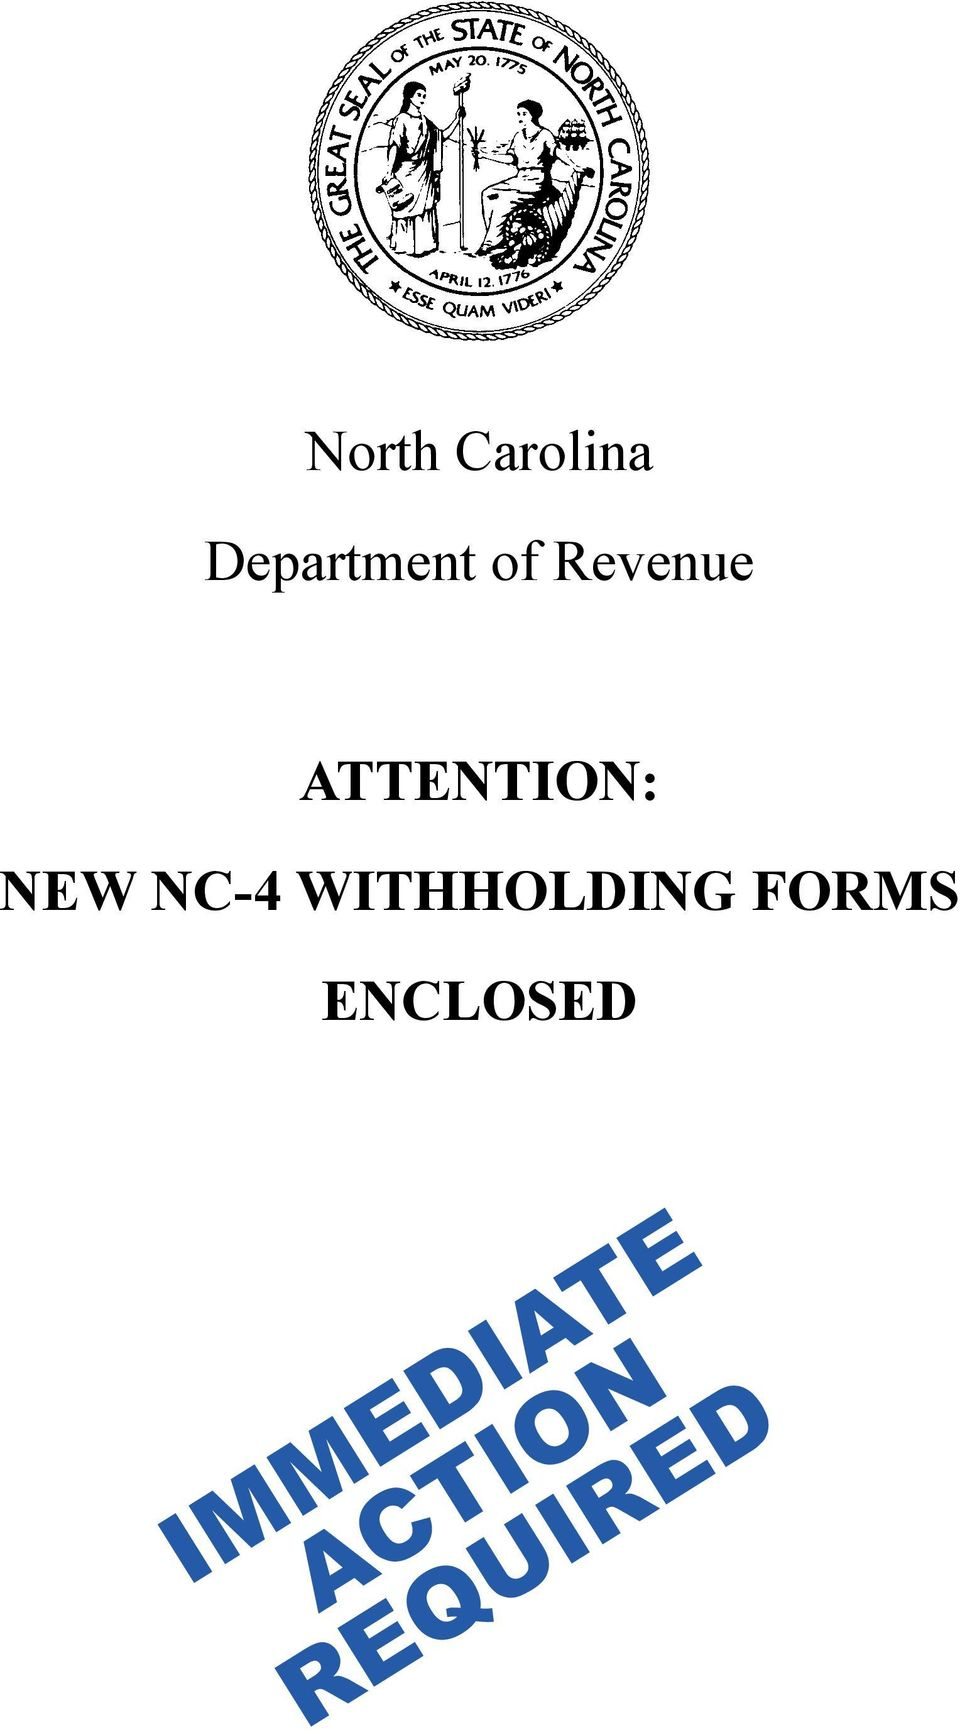 NC-4 WITHHOLDING FORMS